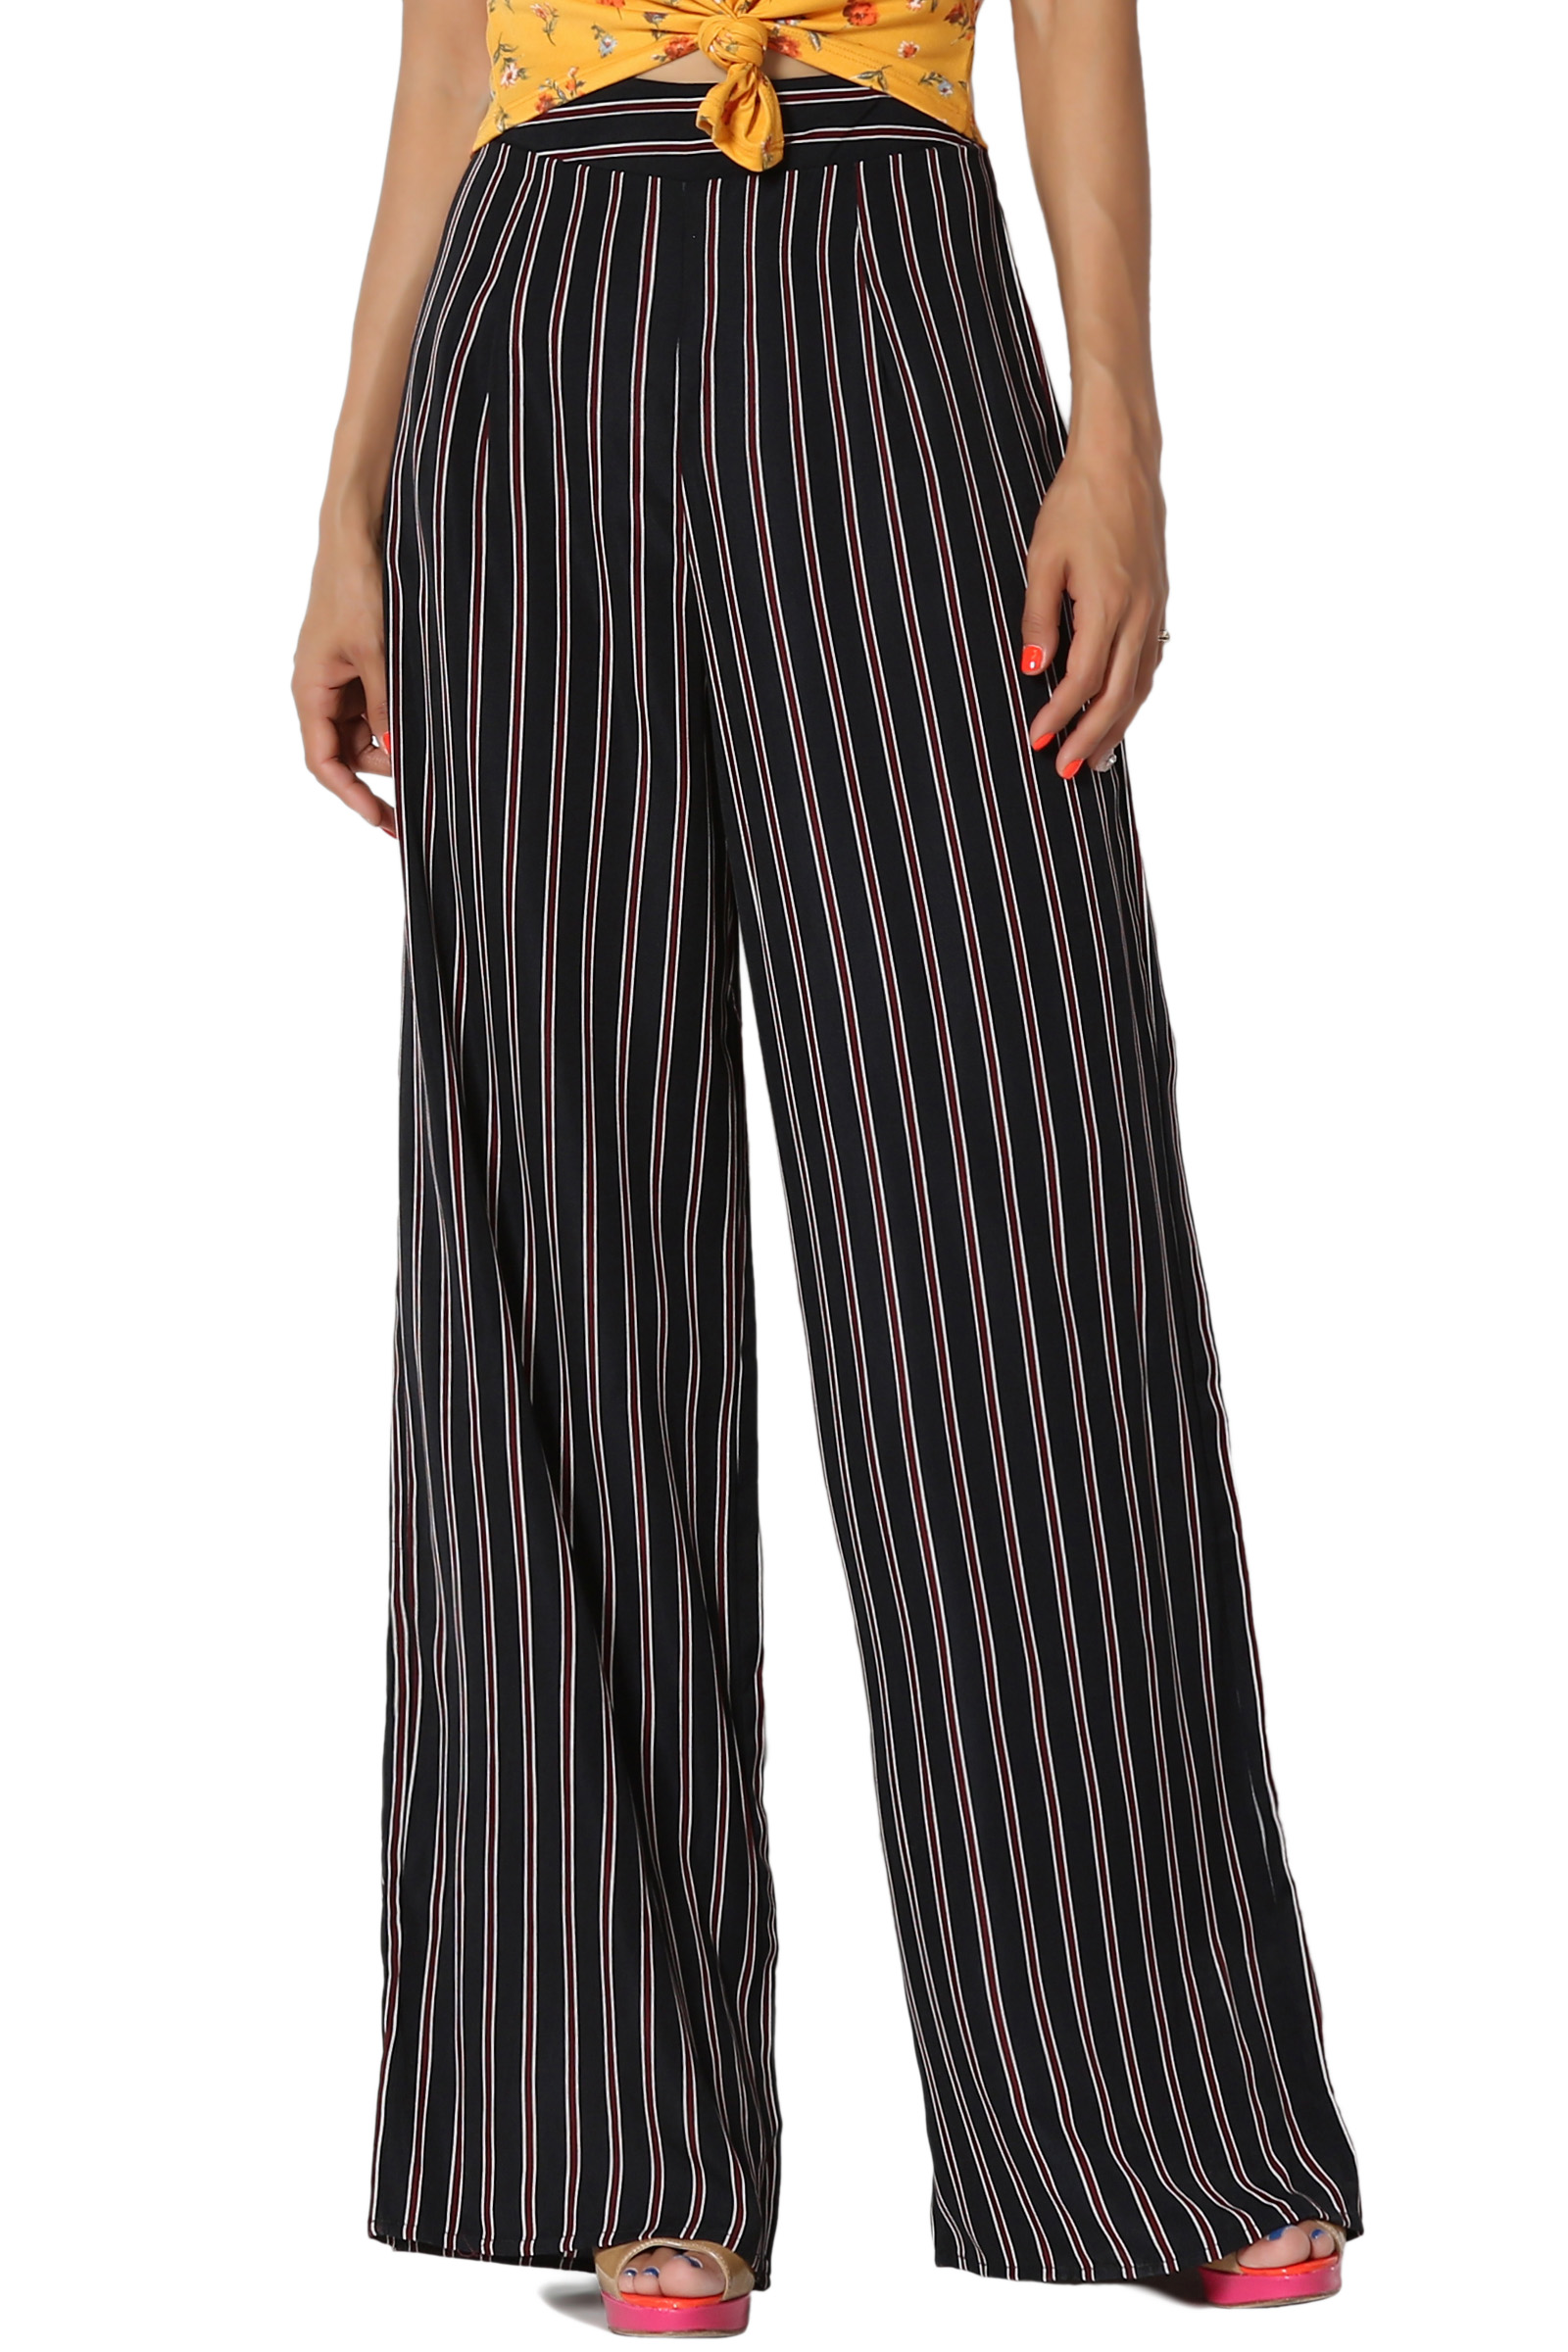 TheMogan Tied Wrap Front Elastic High Waist Flowy Stretch Wide Leg Pull-On Pants